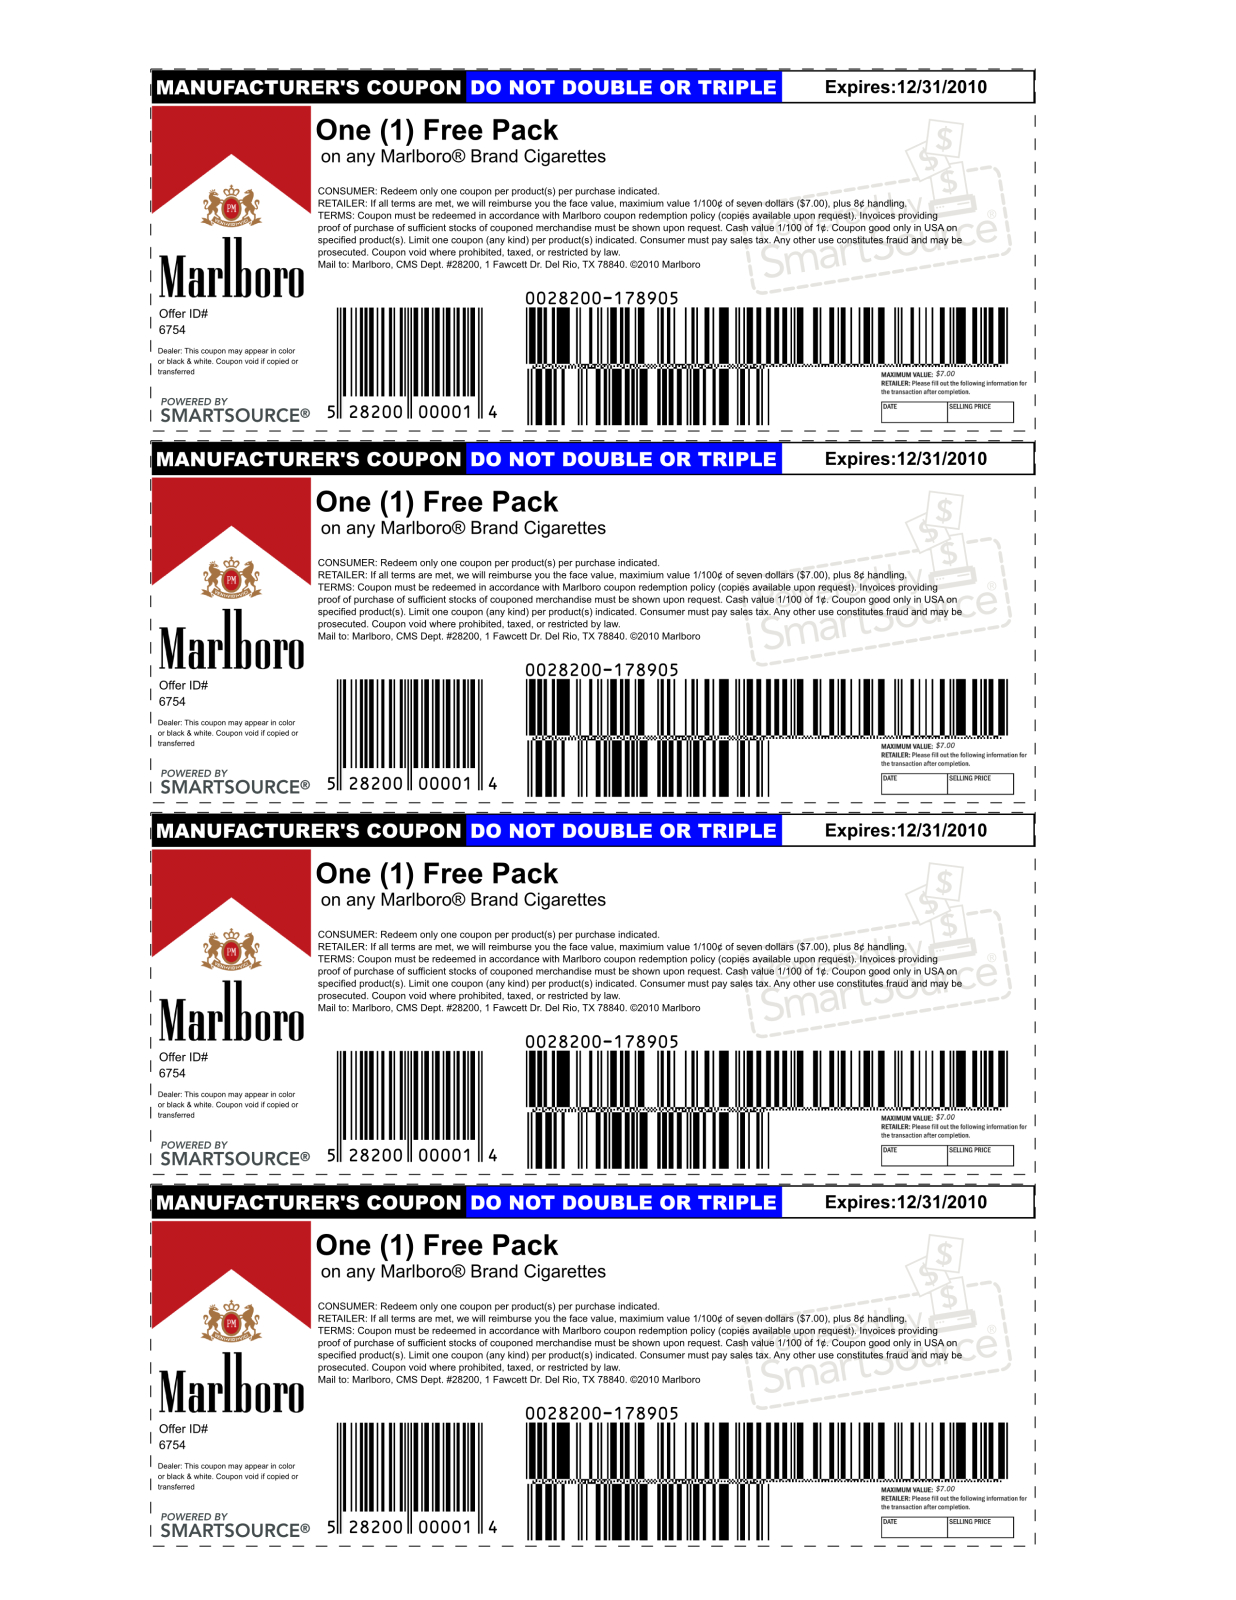 Marlboro Coupons Printable 2013 | Is Using A Possibly Fake Coupon - Free Printable Newport Cigarette Coupons